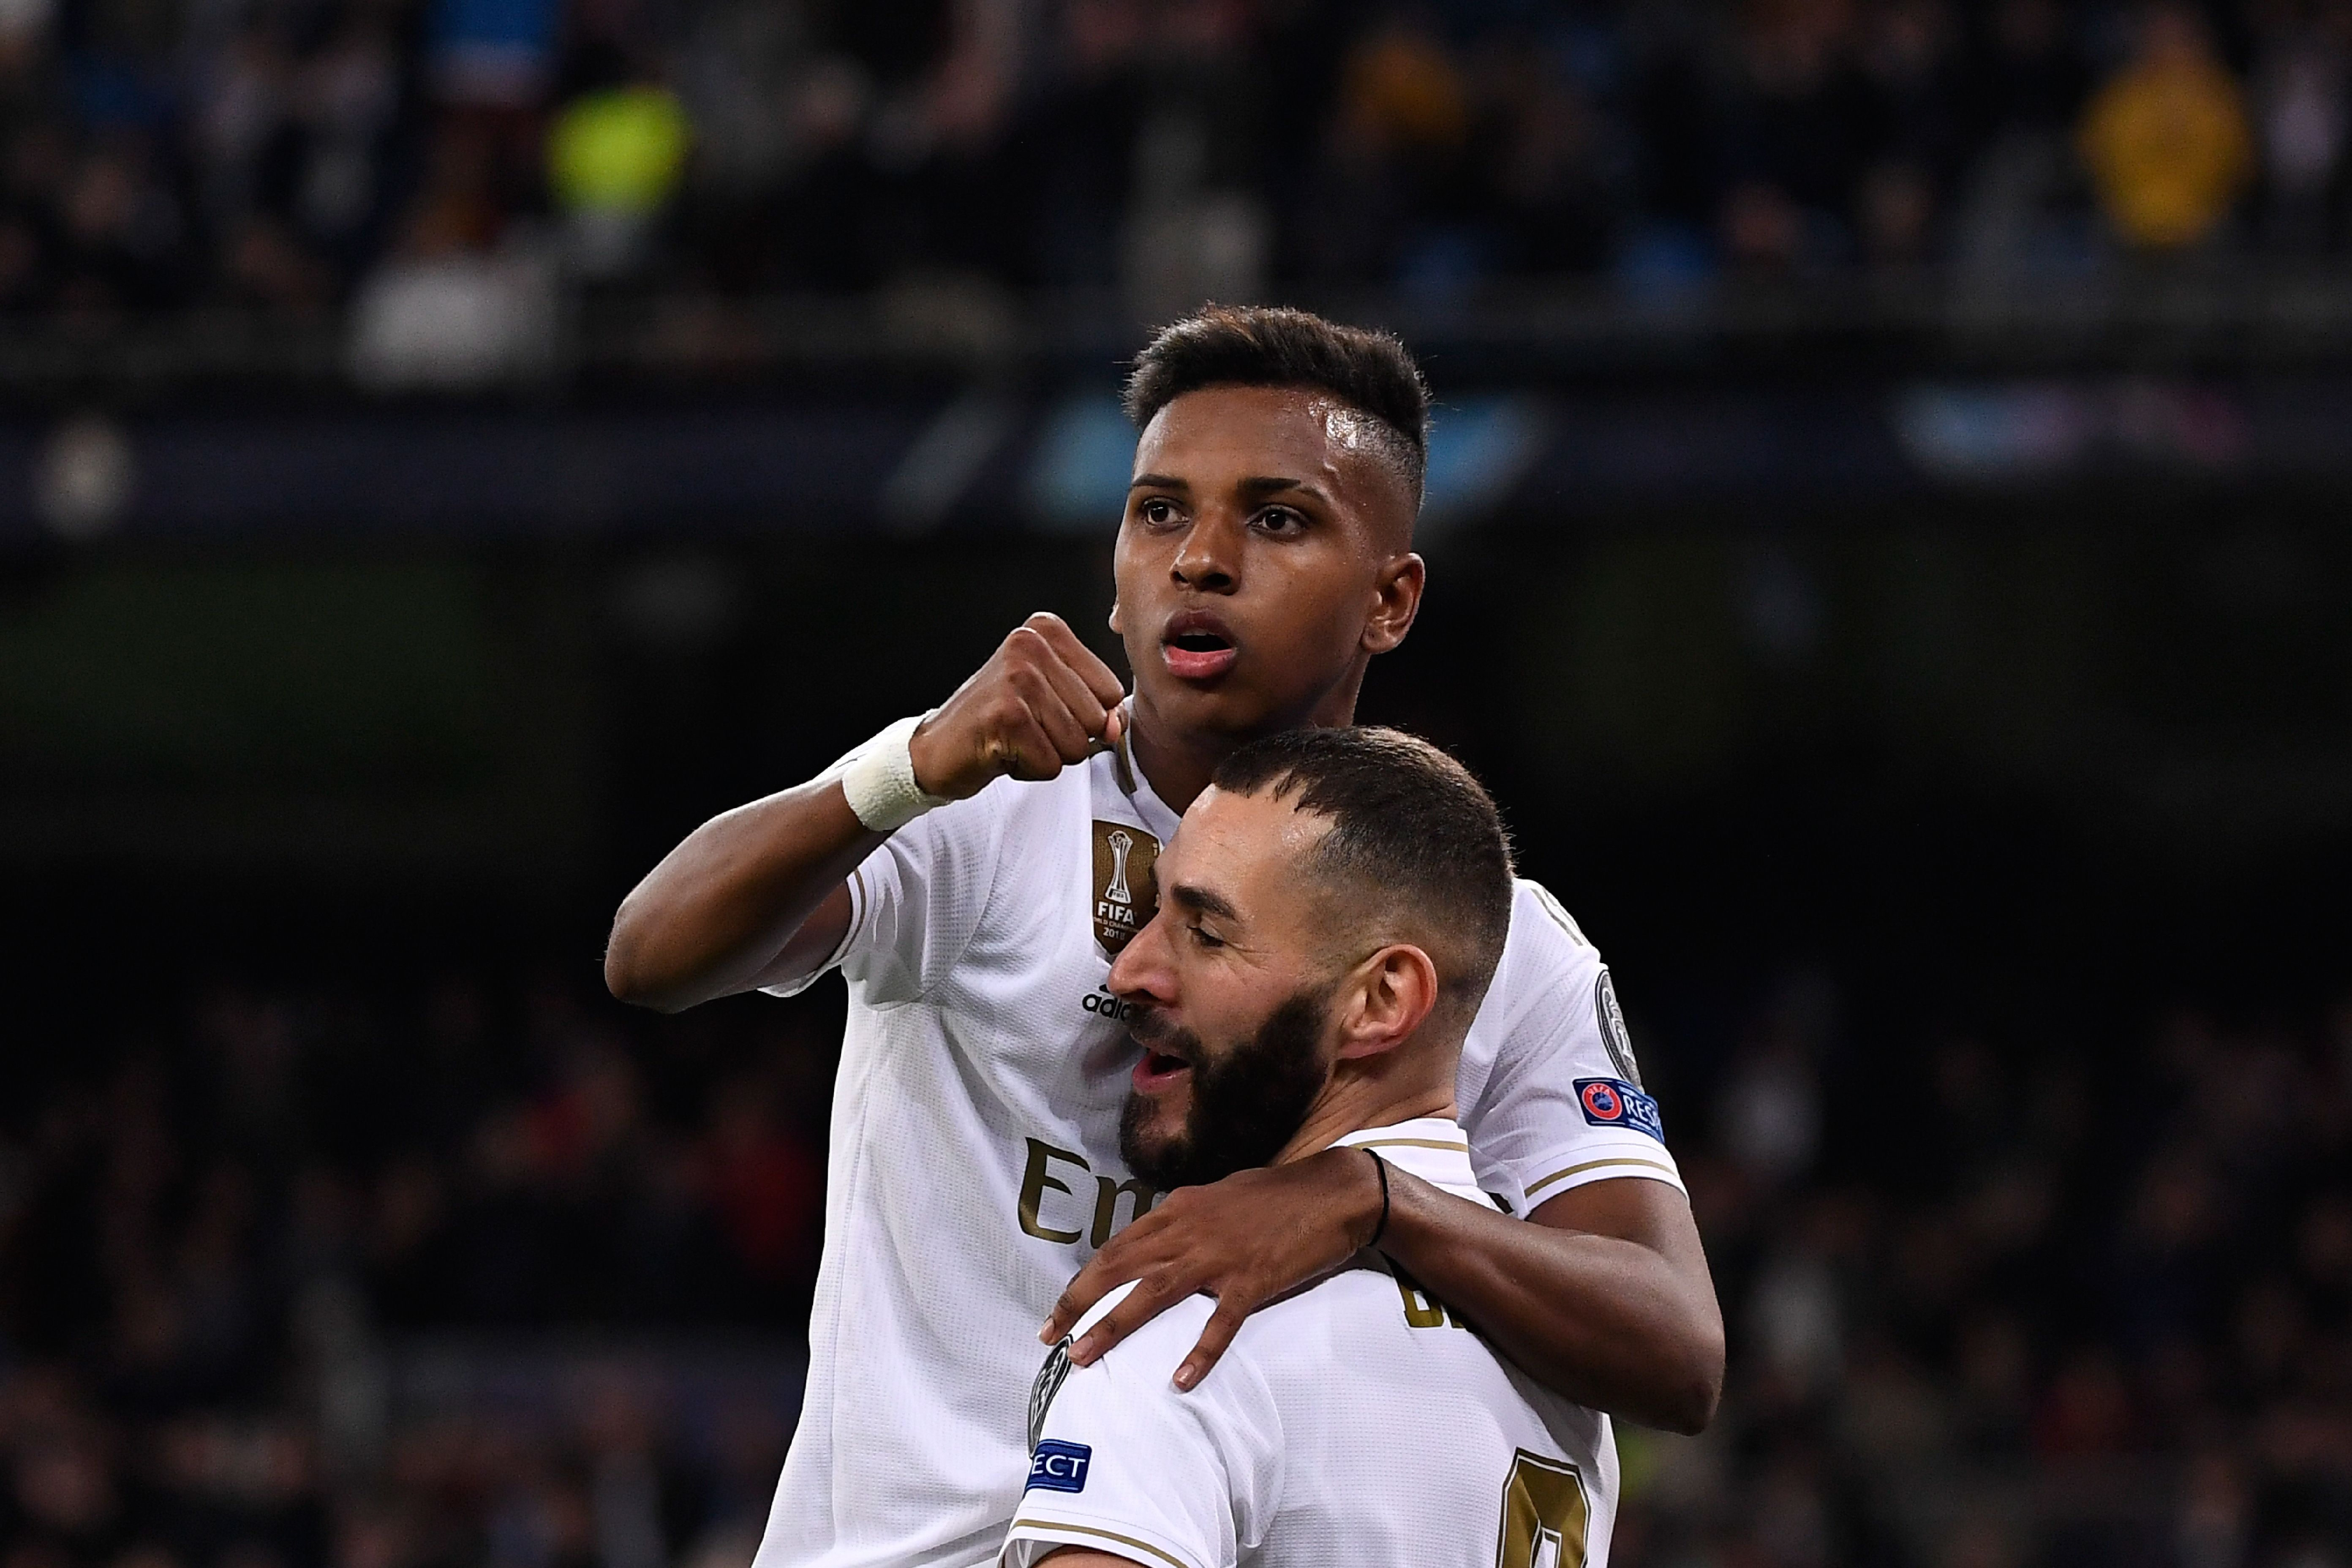 Rodrygo and Benzema missed good chances (Photo by Pierre-Philippe Marcou/AFP via Getty Images)